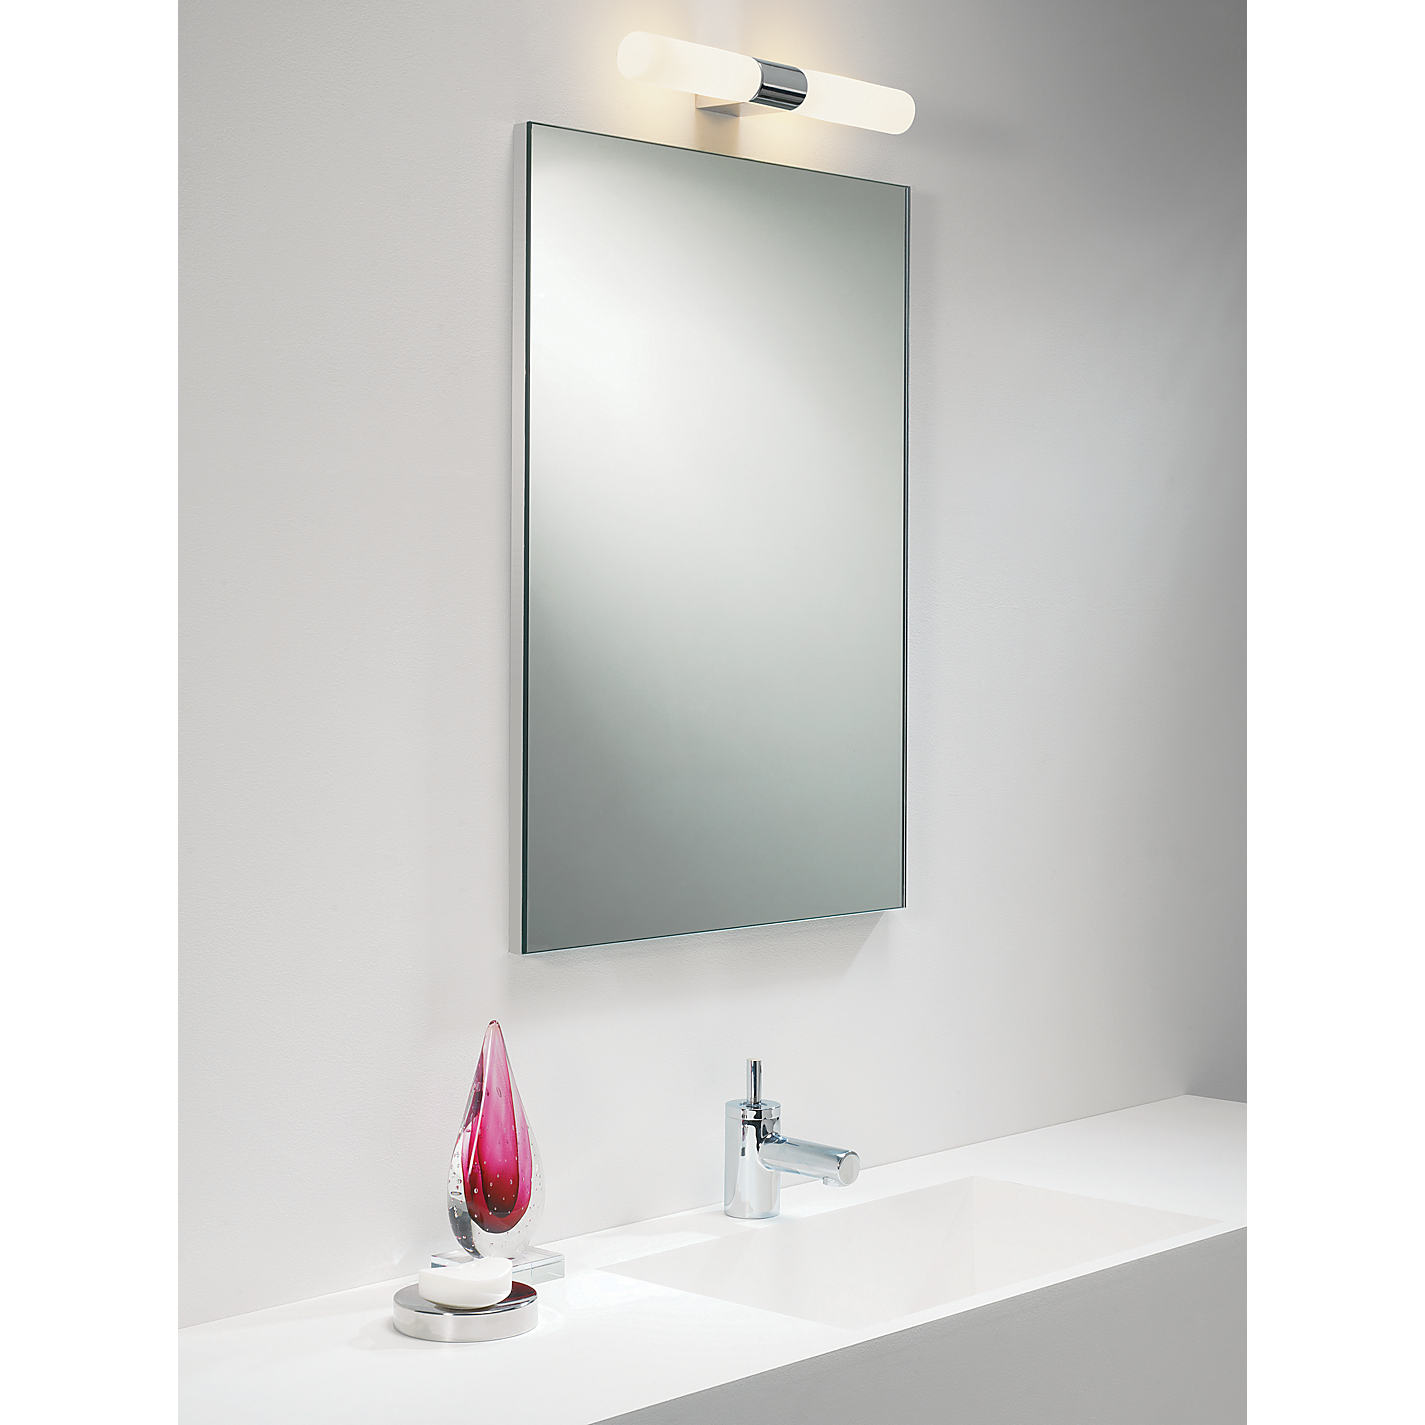 Buy Astro Padova Over Mirror Bathroom Light Online At Johnlewis.com .  M